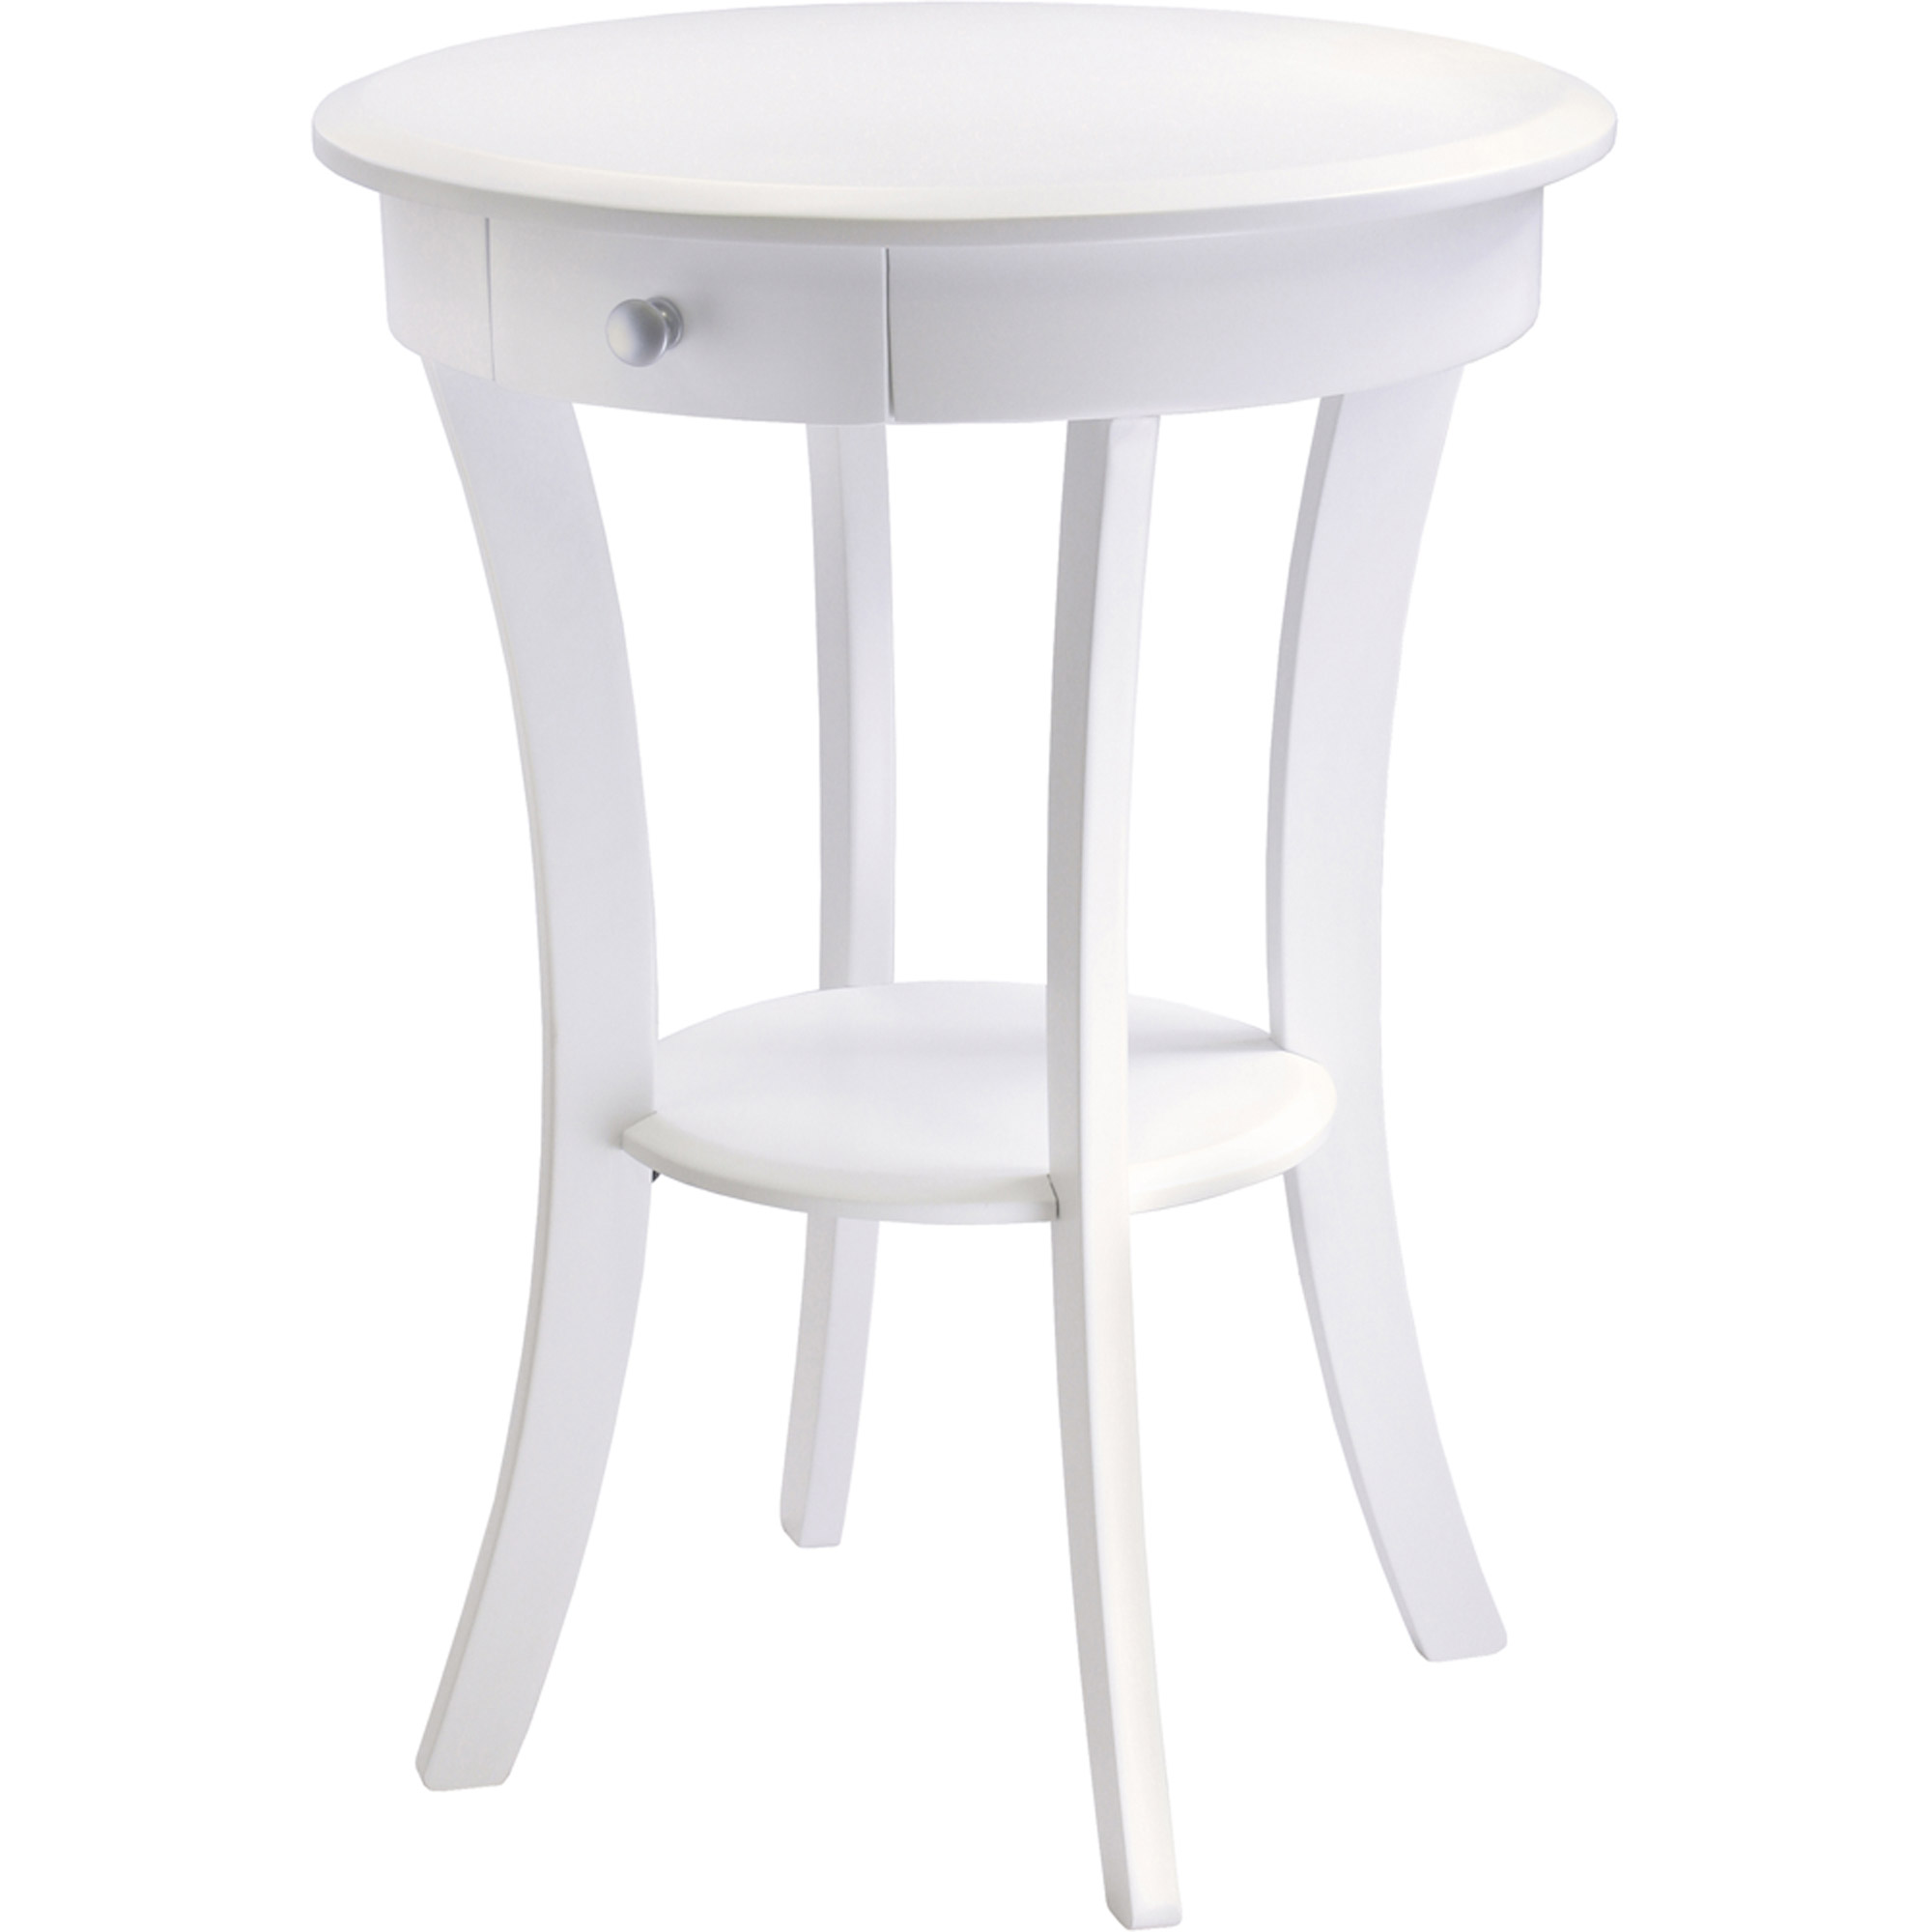 sasha round accent table outdoor wood narrow foyer corner chest furniture shade and light silver sofa ikea white coffee pie shaped end nautical themed bedroom oak console foosball